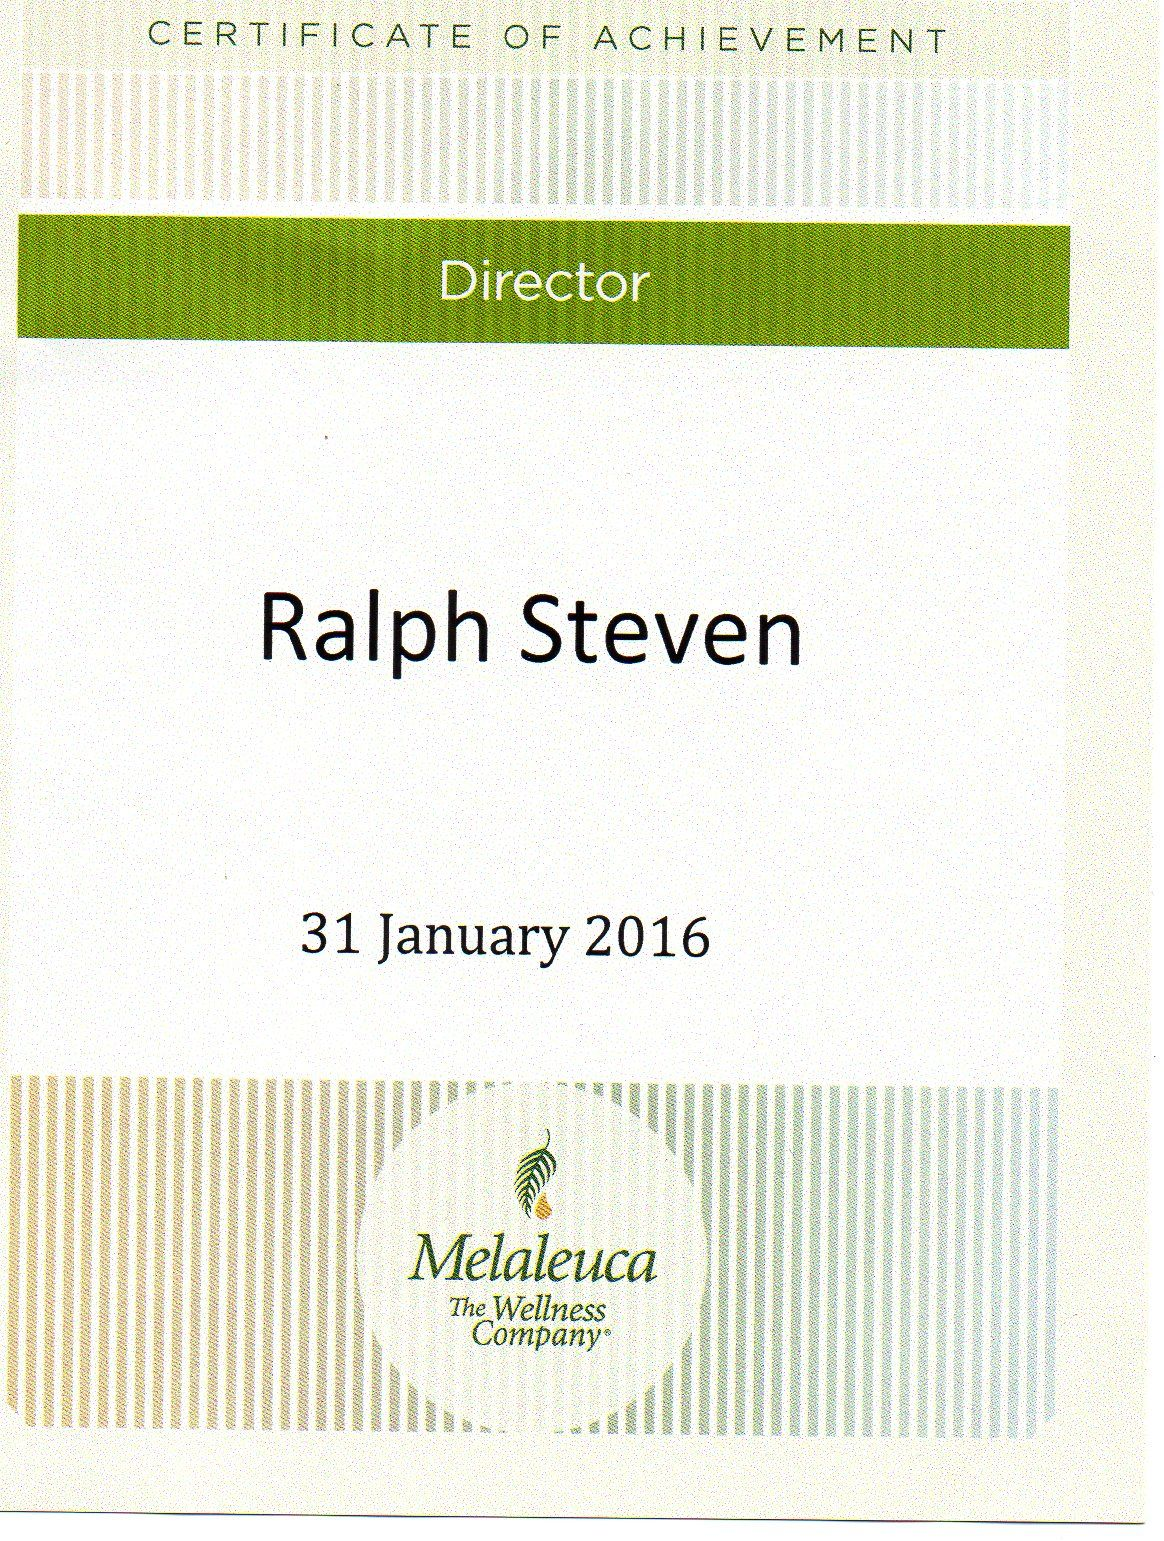 My Director Certificate Achievement Award  Melaleuca